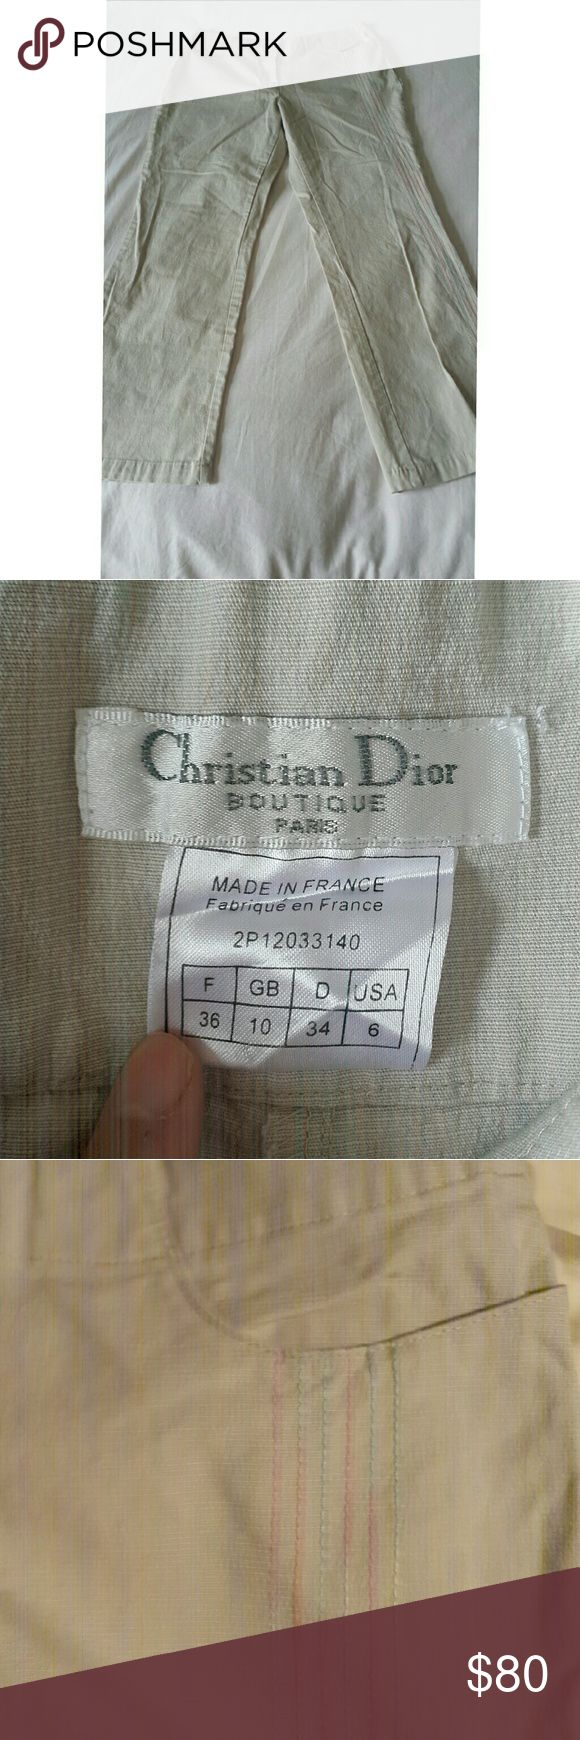 Christian Dior cream pants with details NWOT Cotton lycra blend with fine stitching details Christian Dior Pants Straight Leg